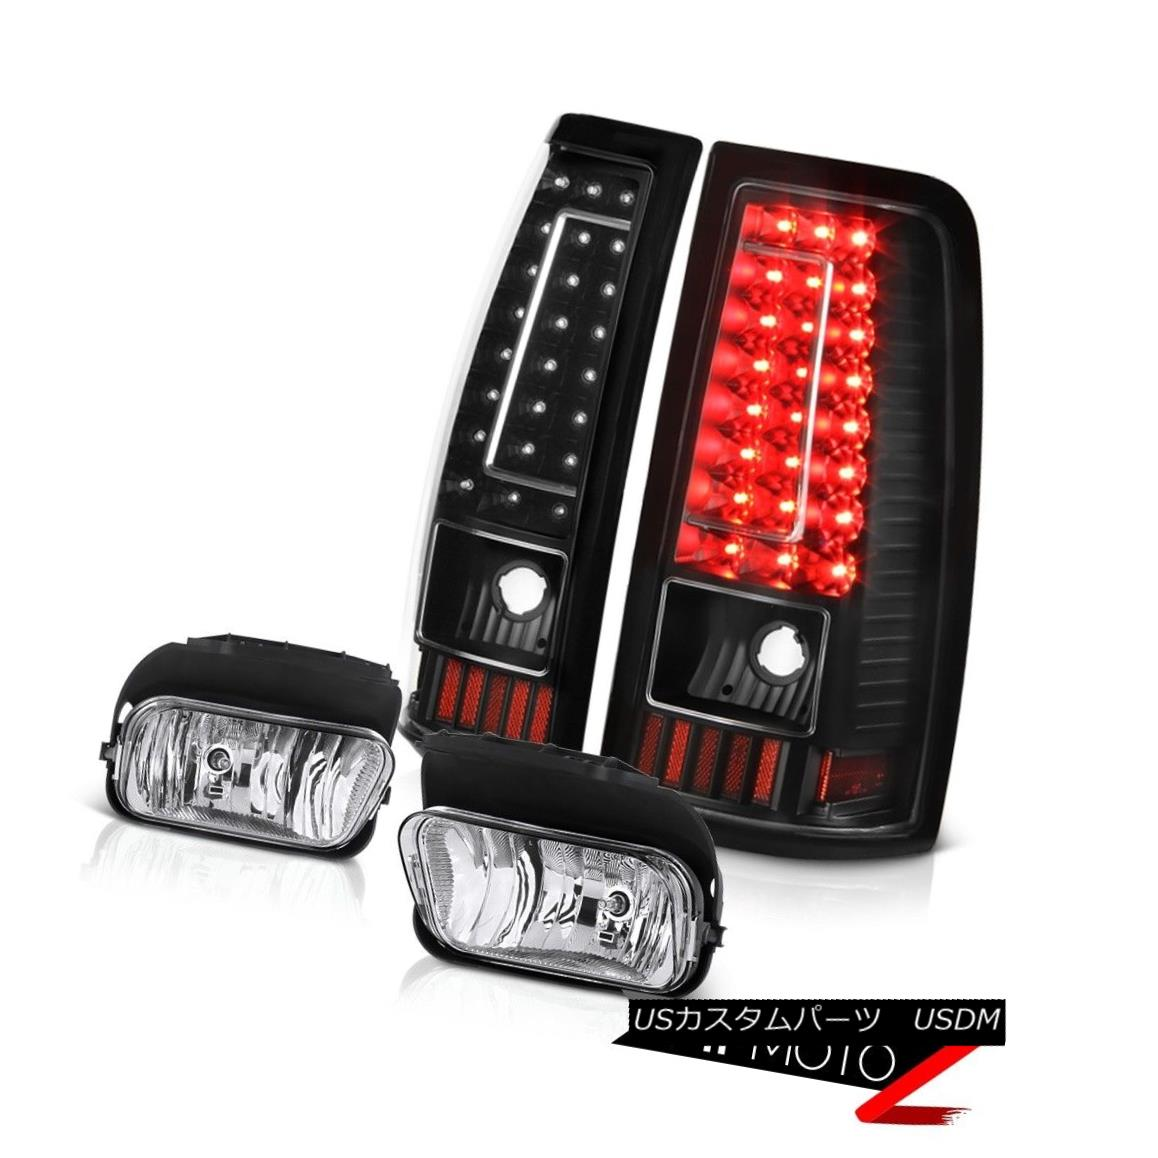 テールライト 2003-2006 Silverado Fog Lamps Tail Lights Crystal Lens LED SMD